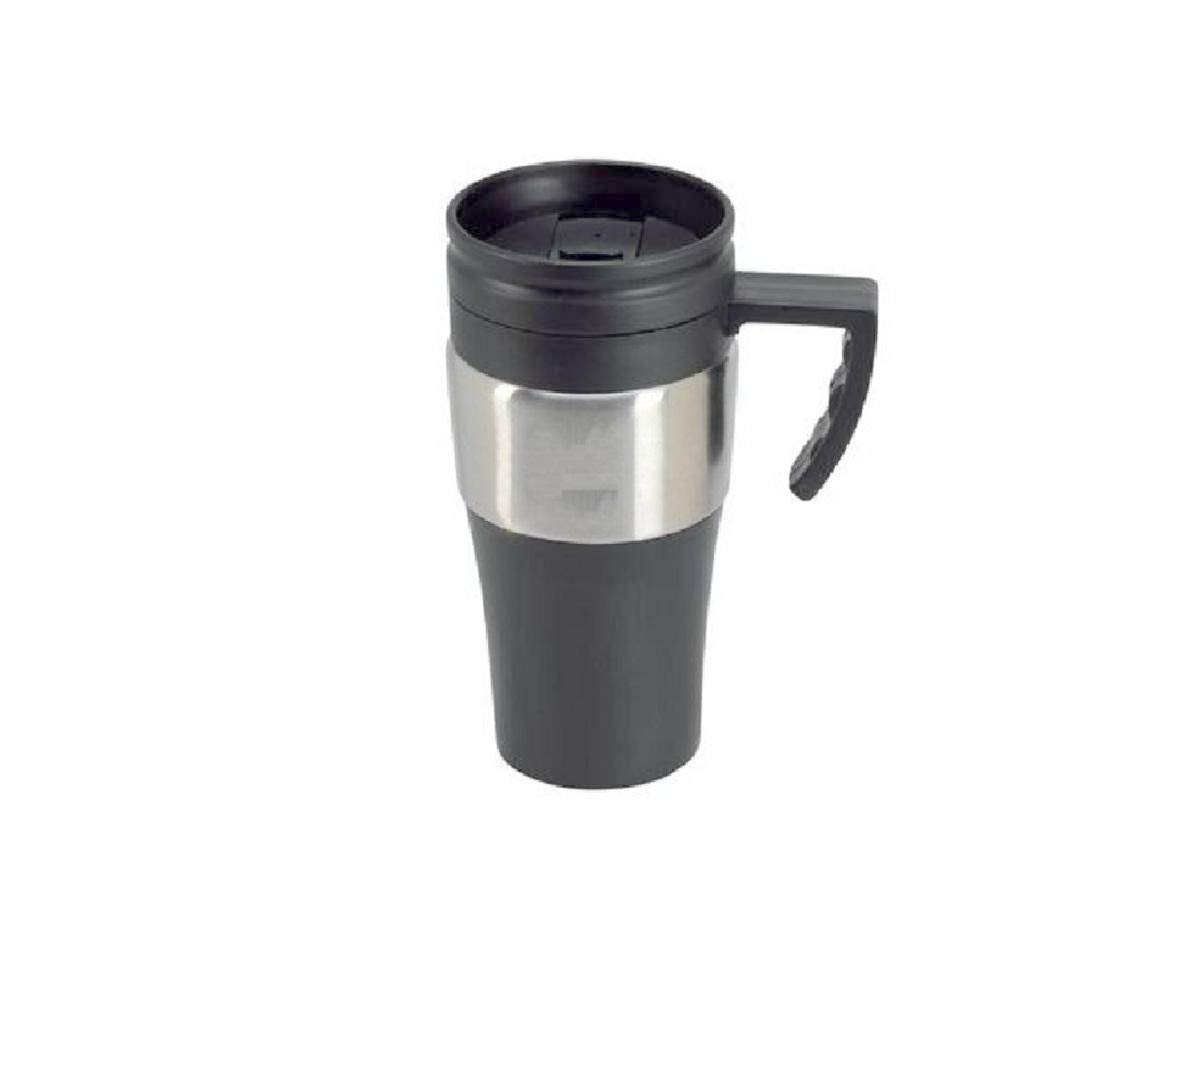 Abs Plastic /& Stainless Steel Auto Travel Mug 16oz Cup Fits All Car Holders Spill Proof Spout